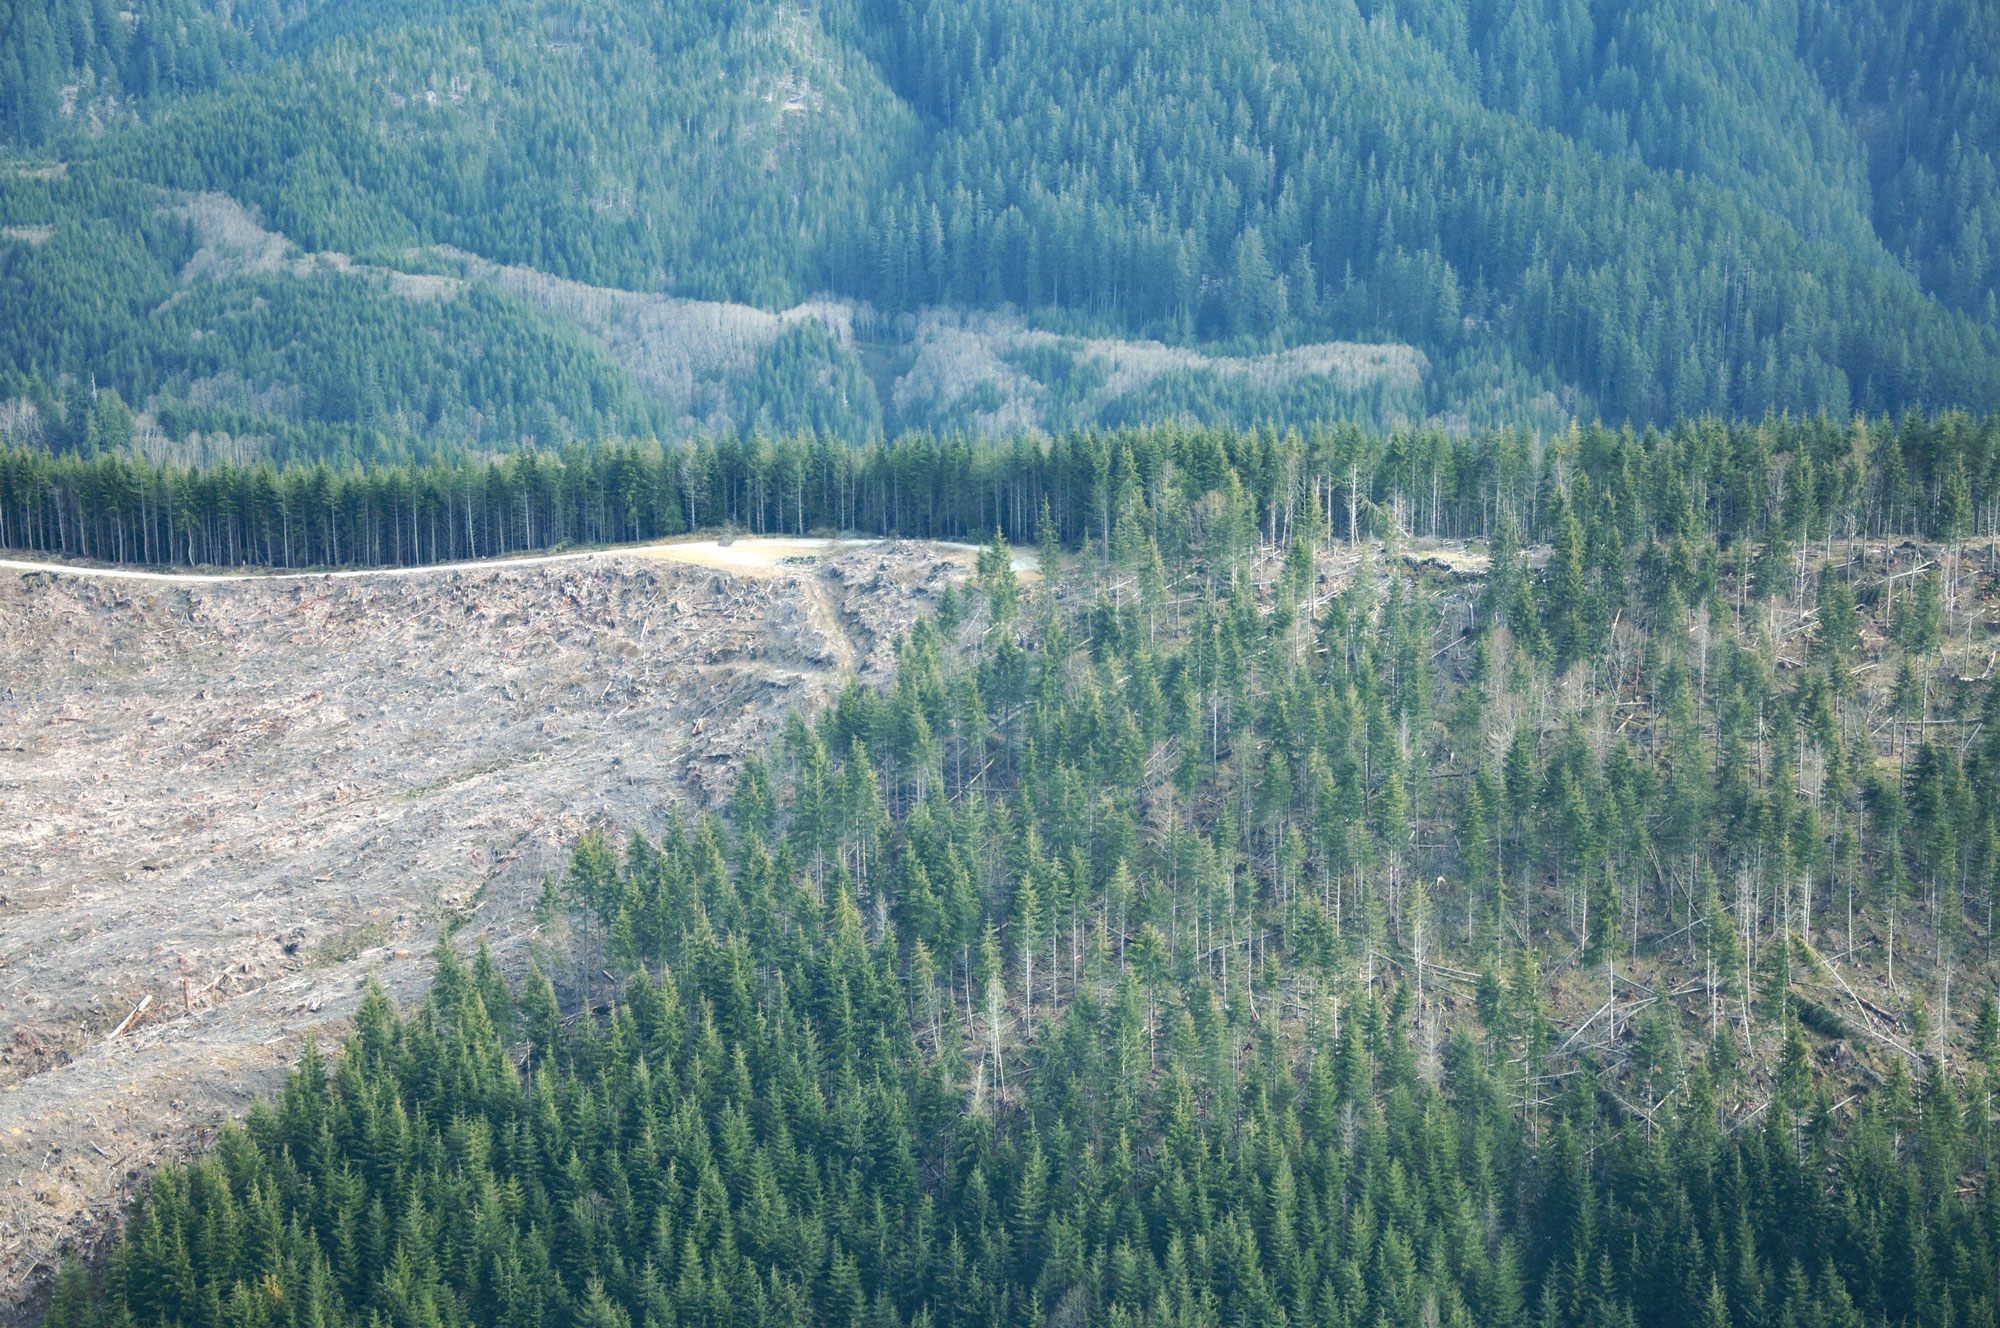 Thinning_versus_clearcutting